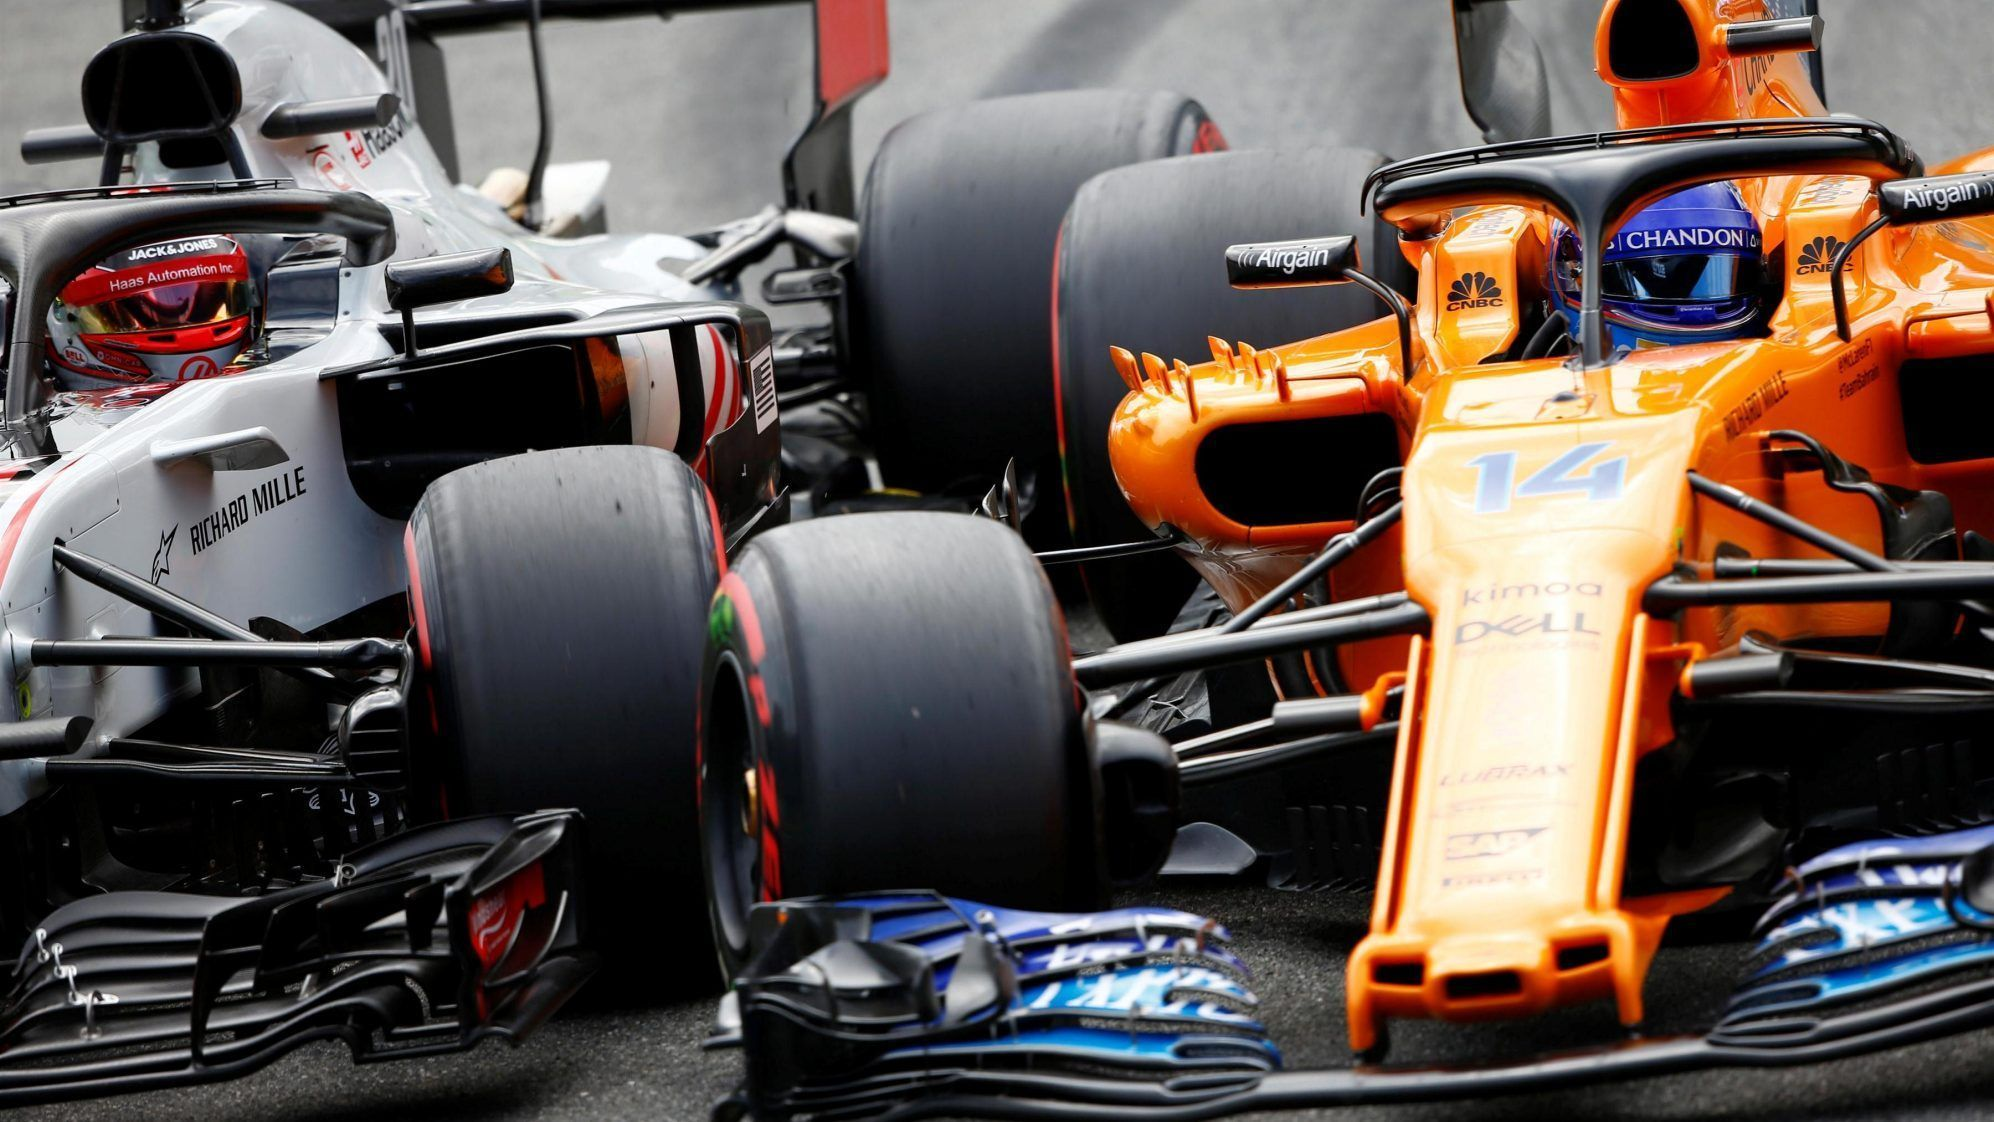 Kevin Magnussen and Fernando Alonso